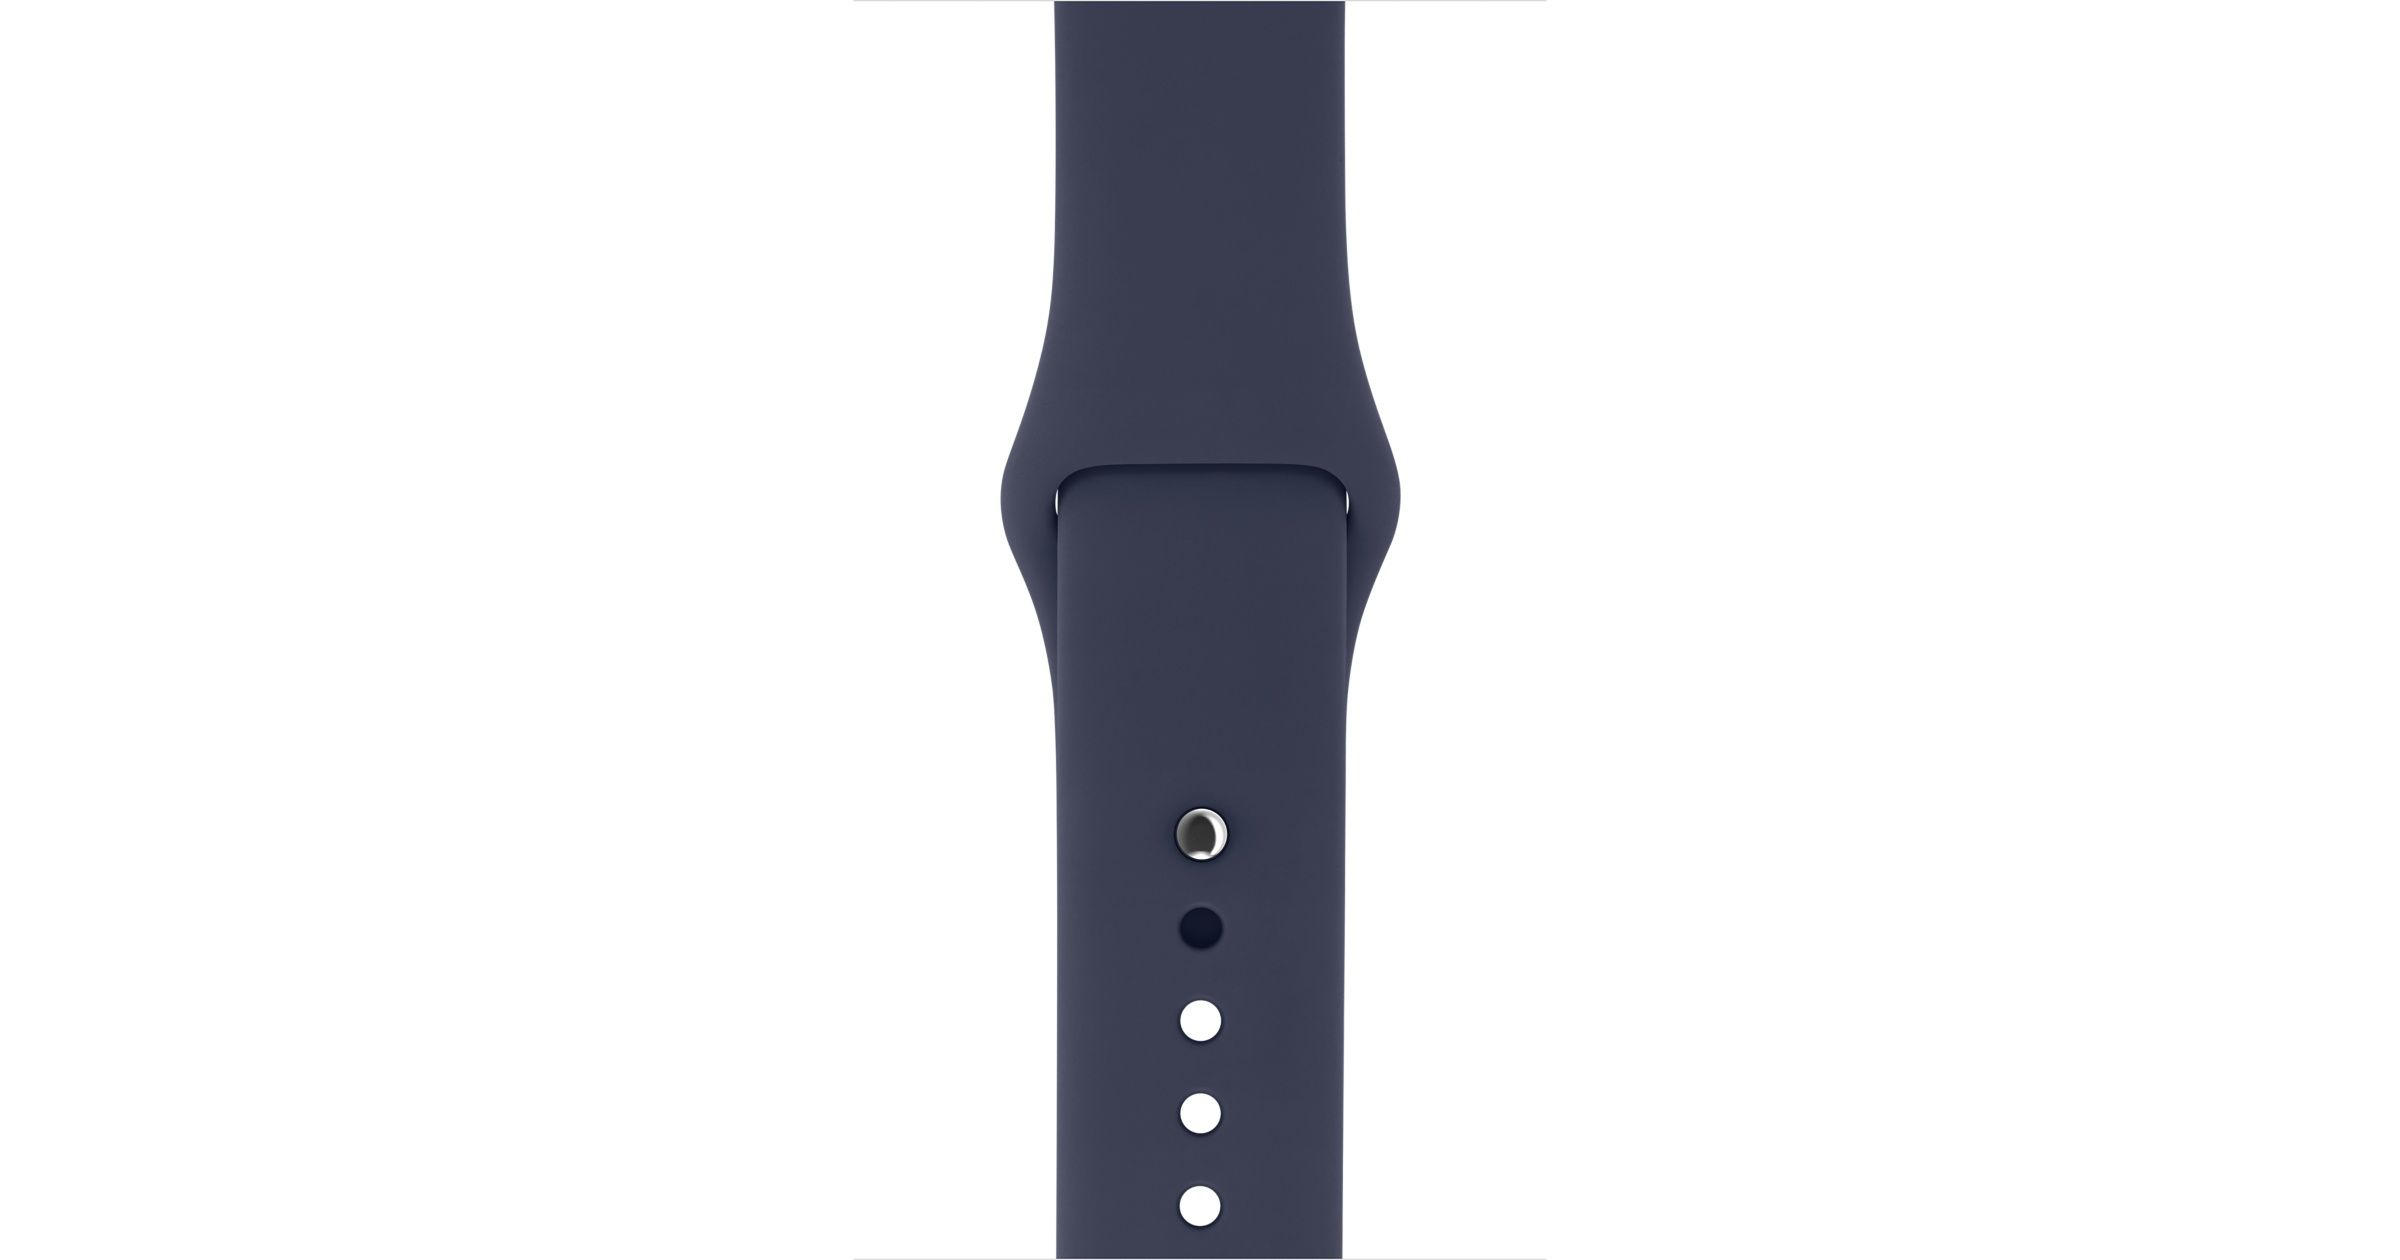 Customize the look and feel of your Apple Watch with a 38mm Midnight Blue Sport Band. Buy now with fast, free shipping.